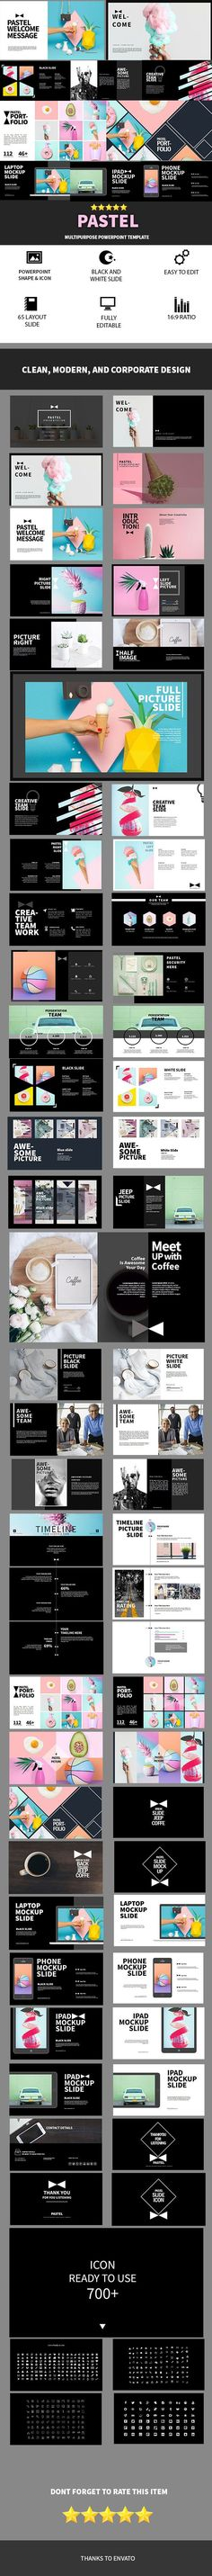 23 best business presentation templates images on pinterest, Templates For Business Presentation, Powerpoint templates